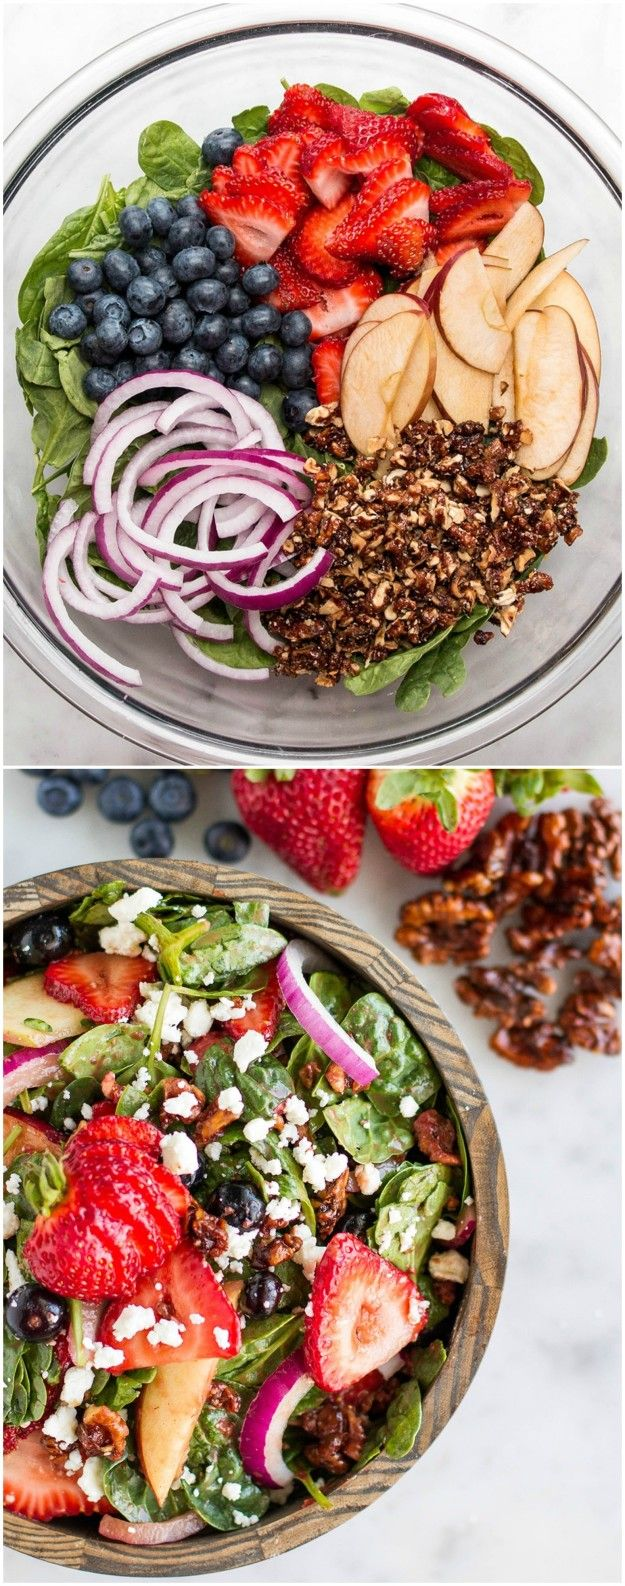 Mixed Berry Salad With Strawberry Balsamic Vinaigrette Dressing                                                                                                                                                      More